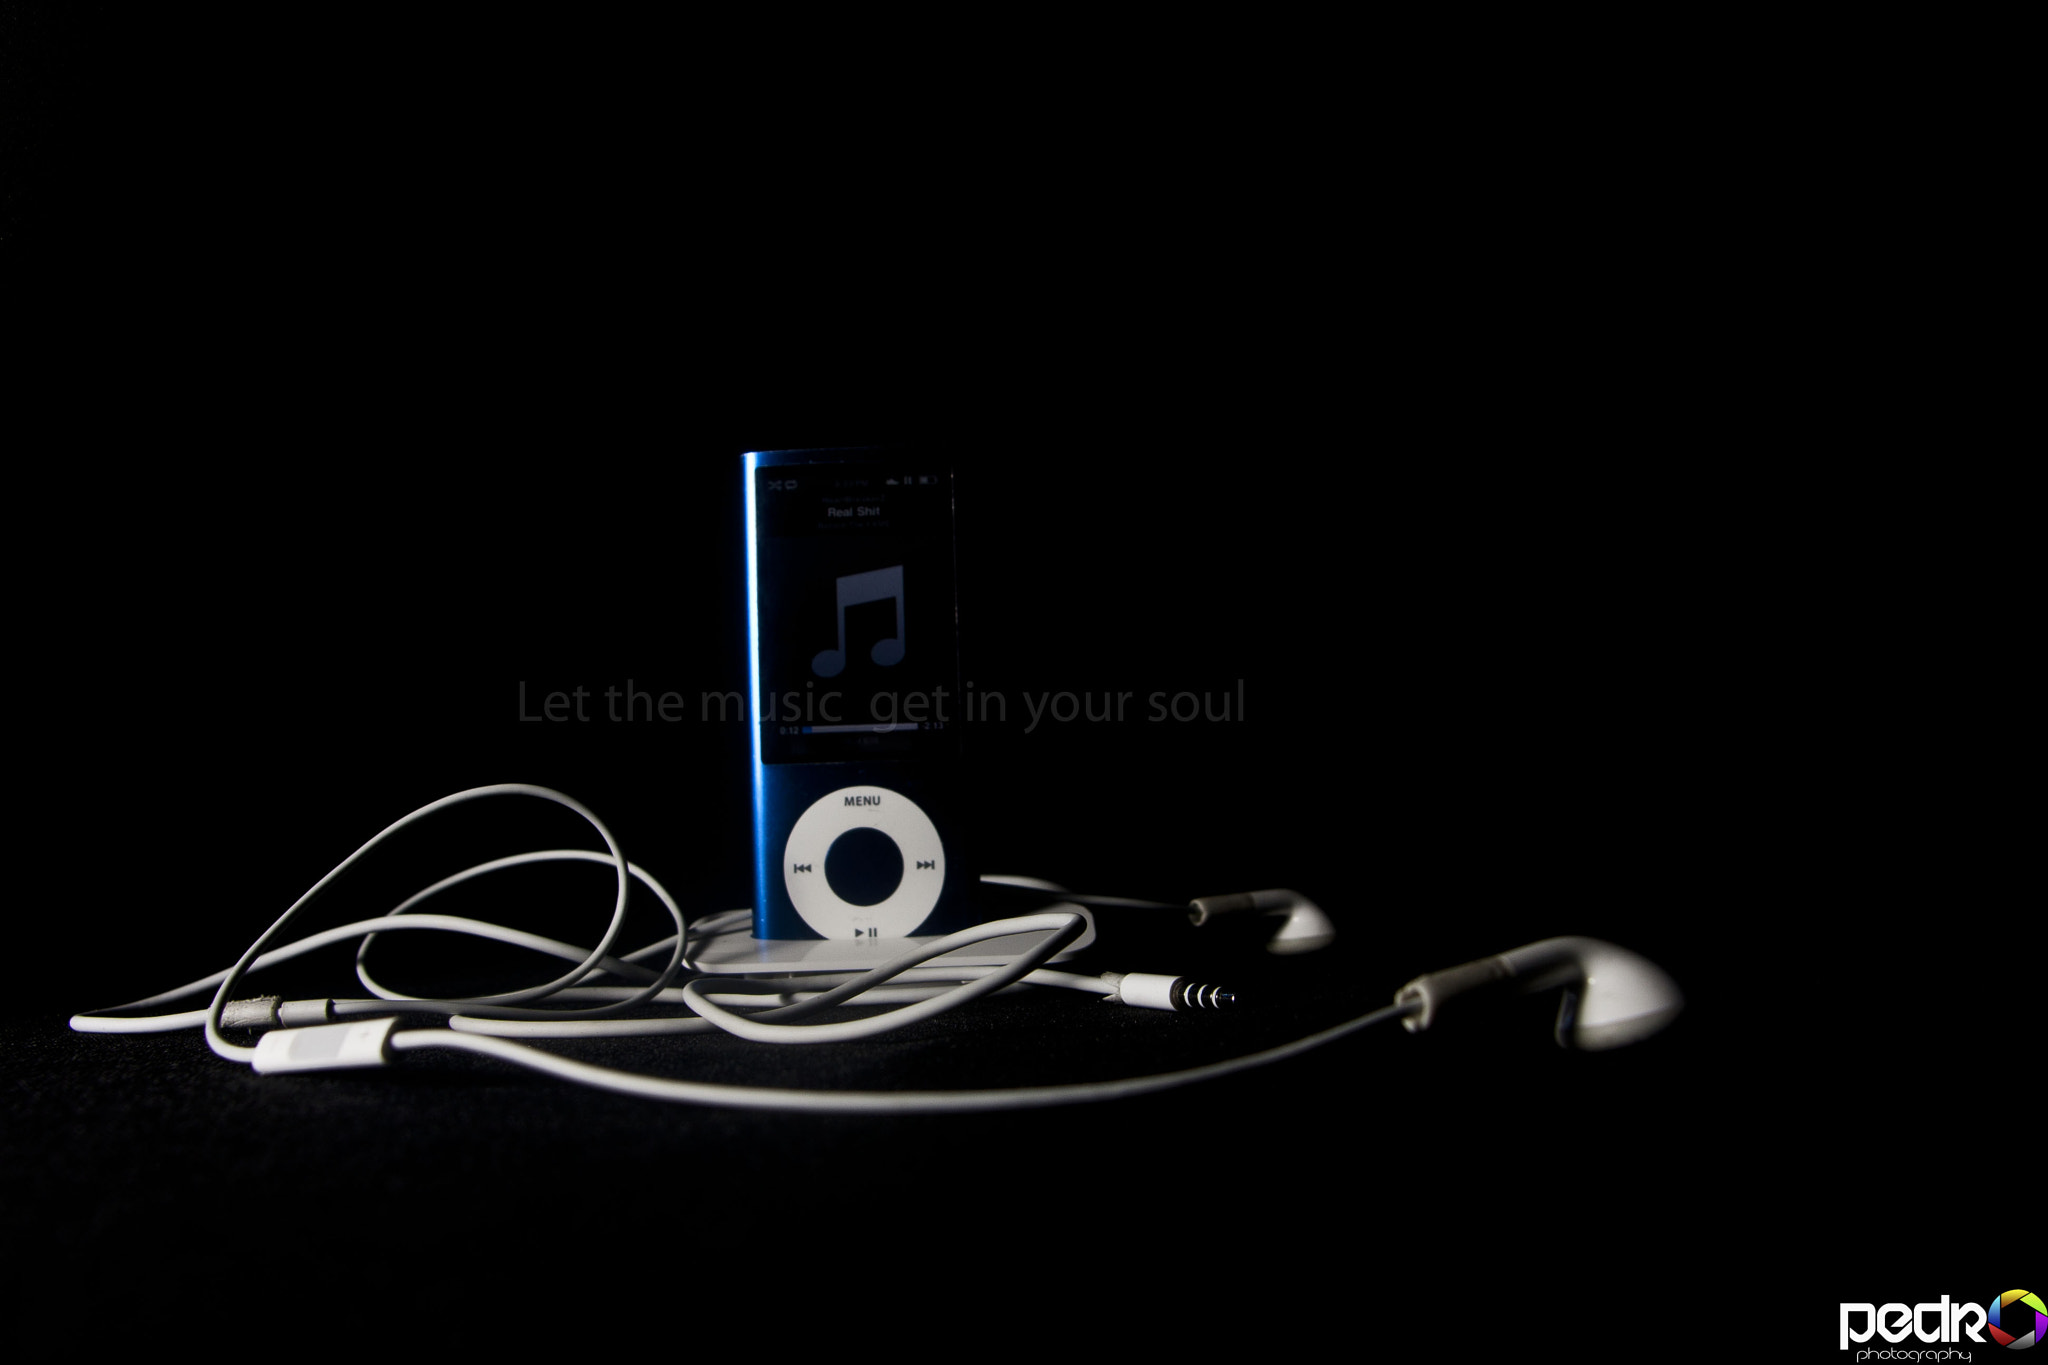 Photograph Let the music get in your soul by Jose Pedro Dava on 500px